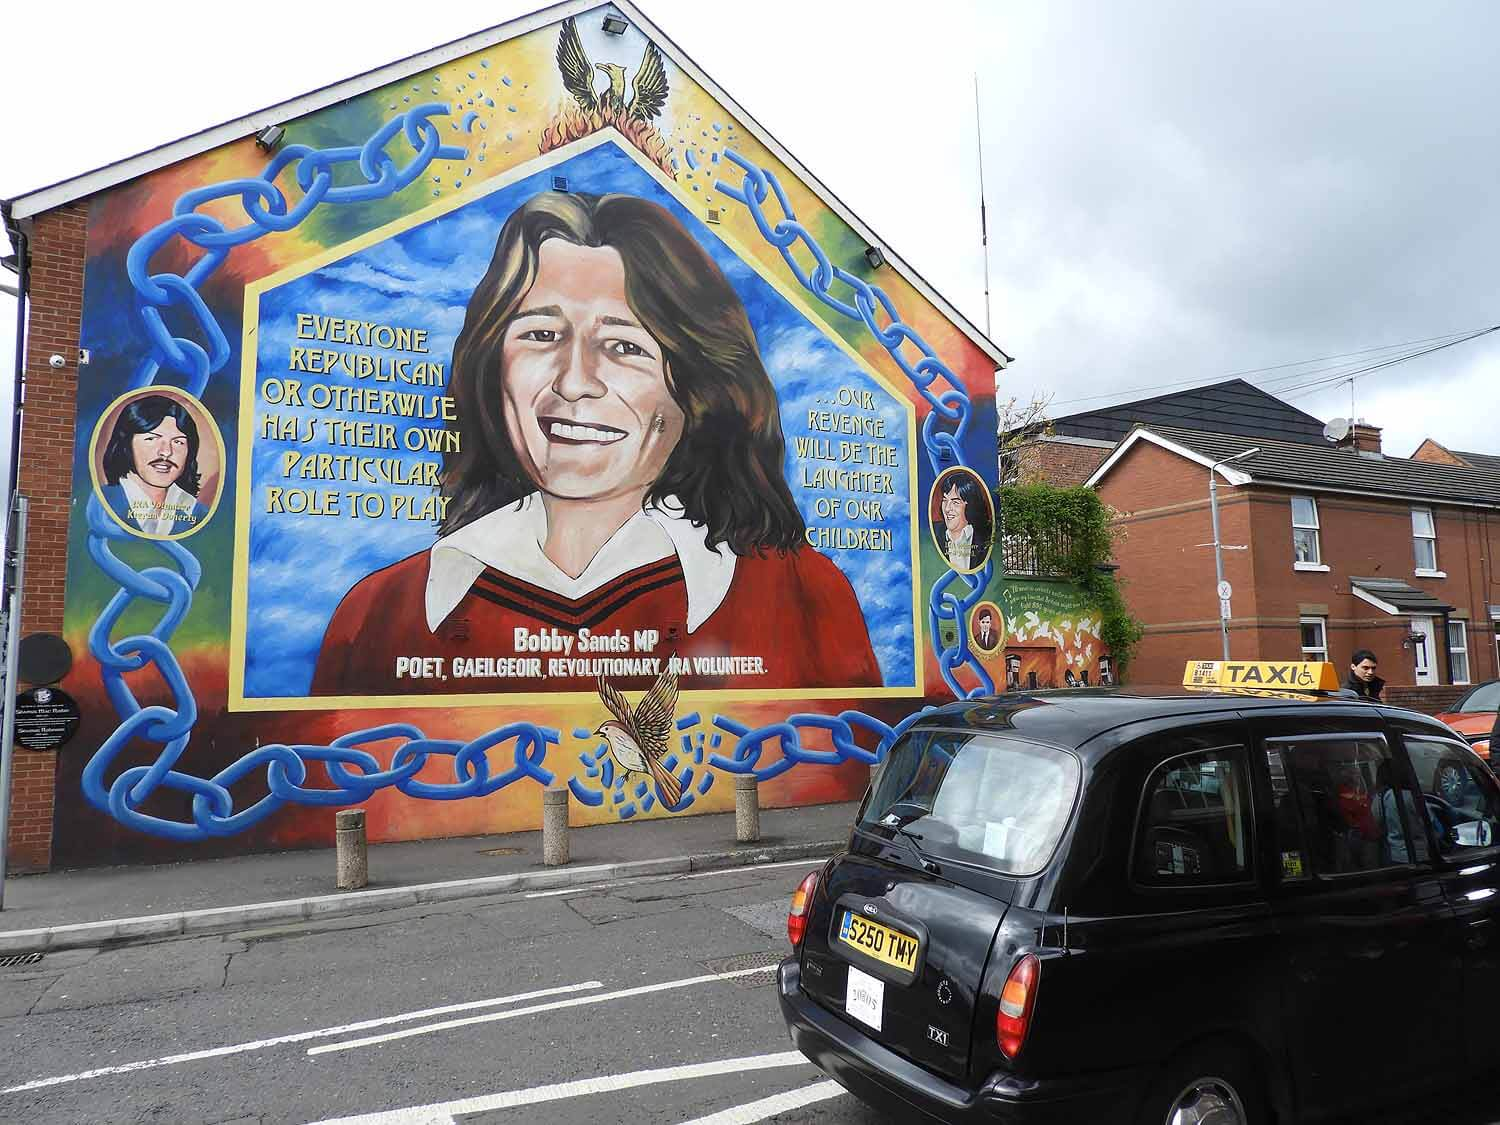 northern-ireland-befast-black-cab-bobby-sands.JPG